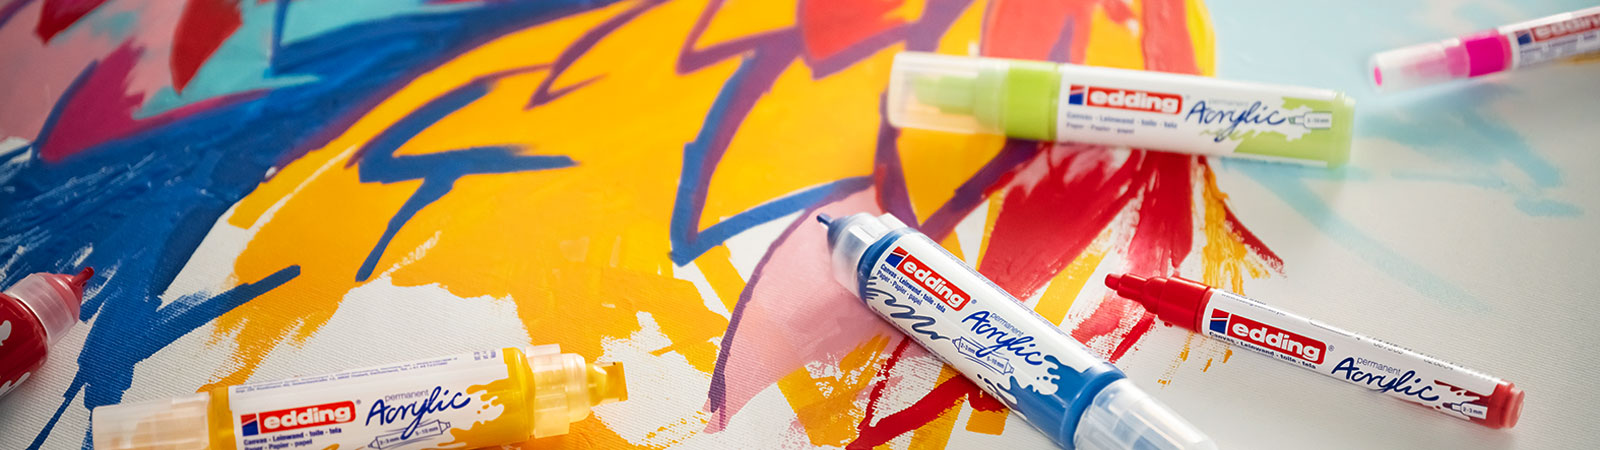 edding Acrylic markers scattered across a colourfully painted canvas